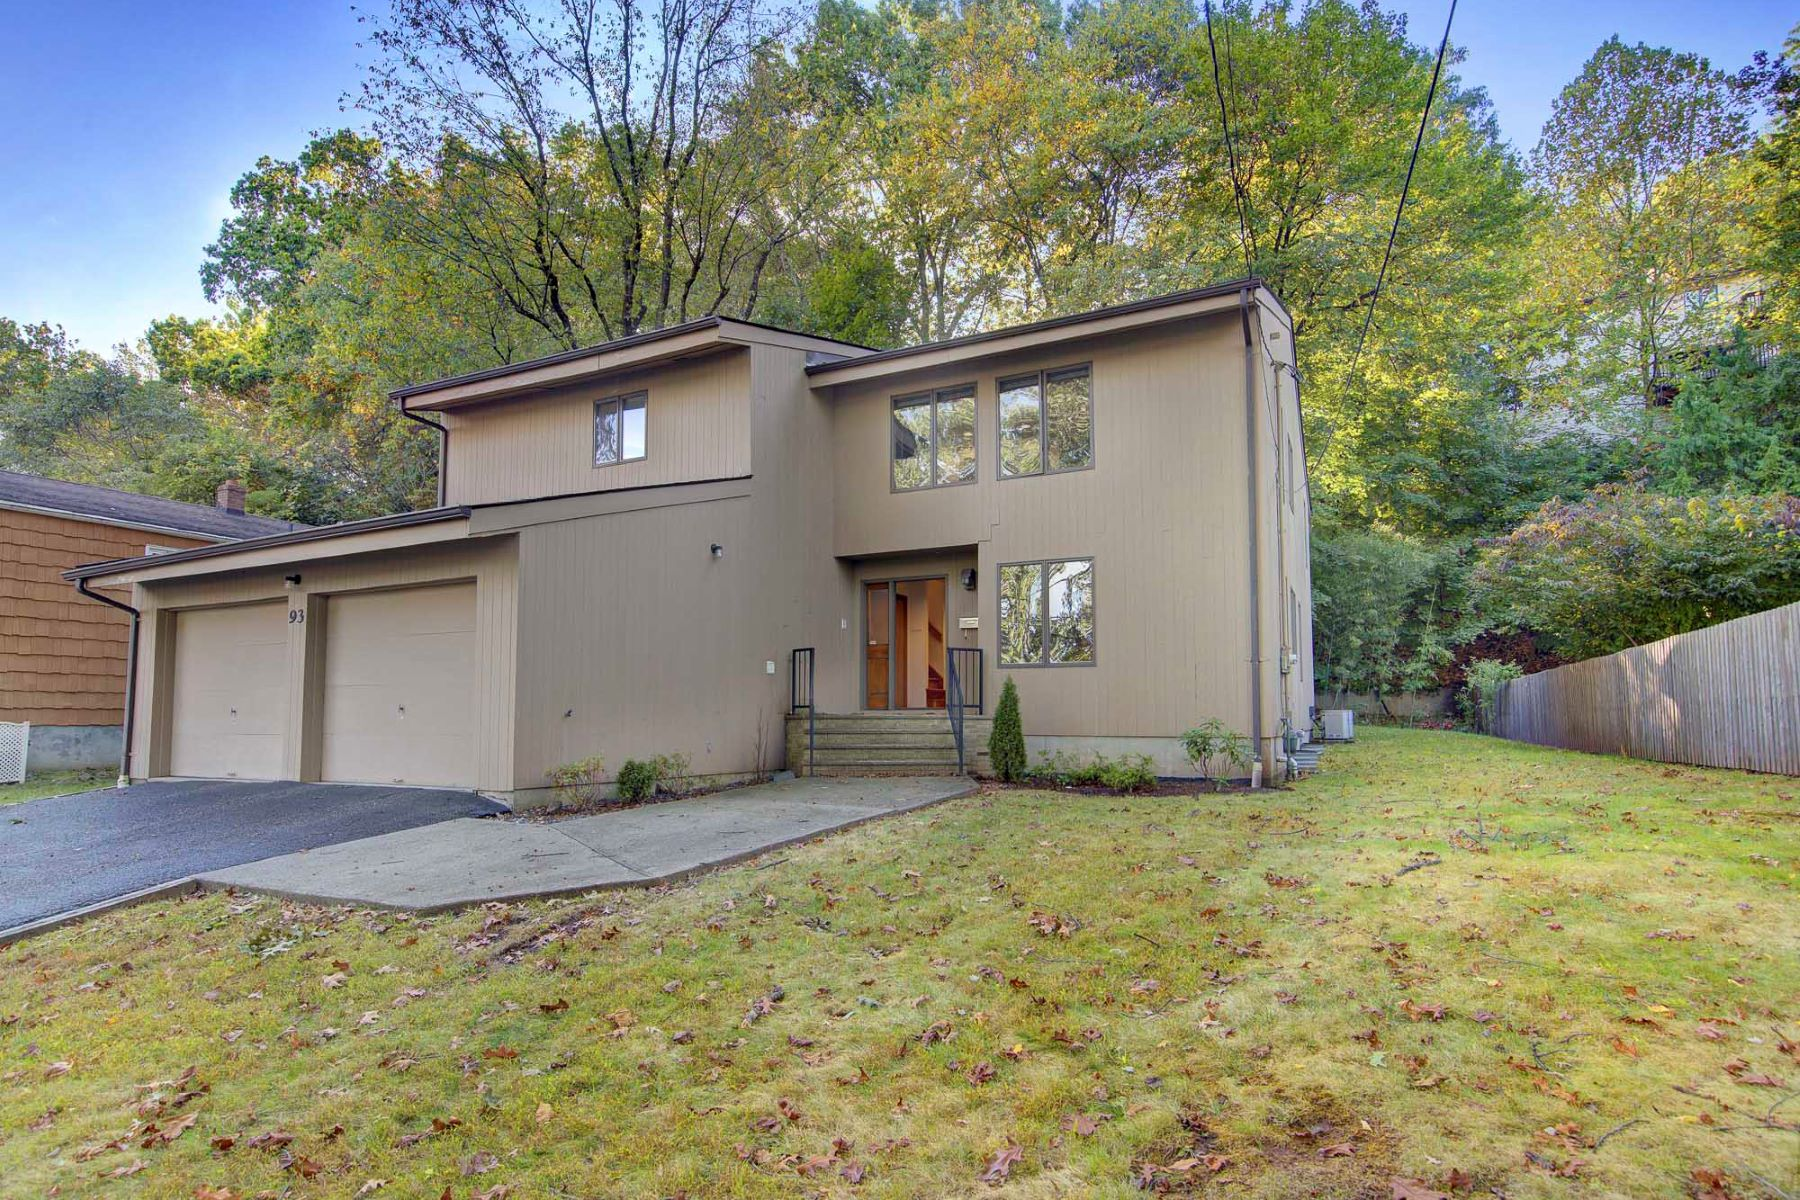 Single Family Homes for Sale at Oversized Contemporary 93 Cedar St, Cresskill, New Jersey 07626 United States